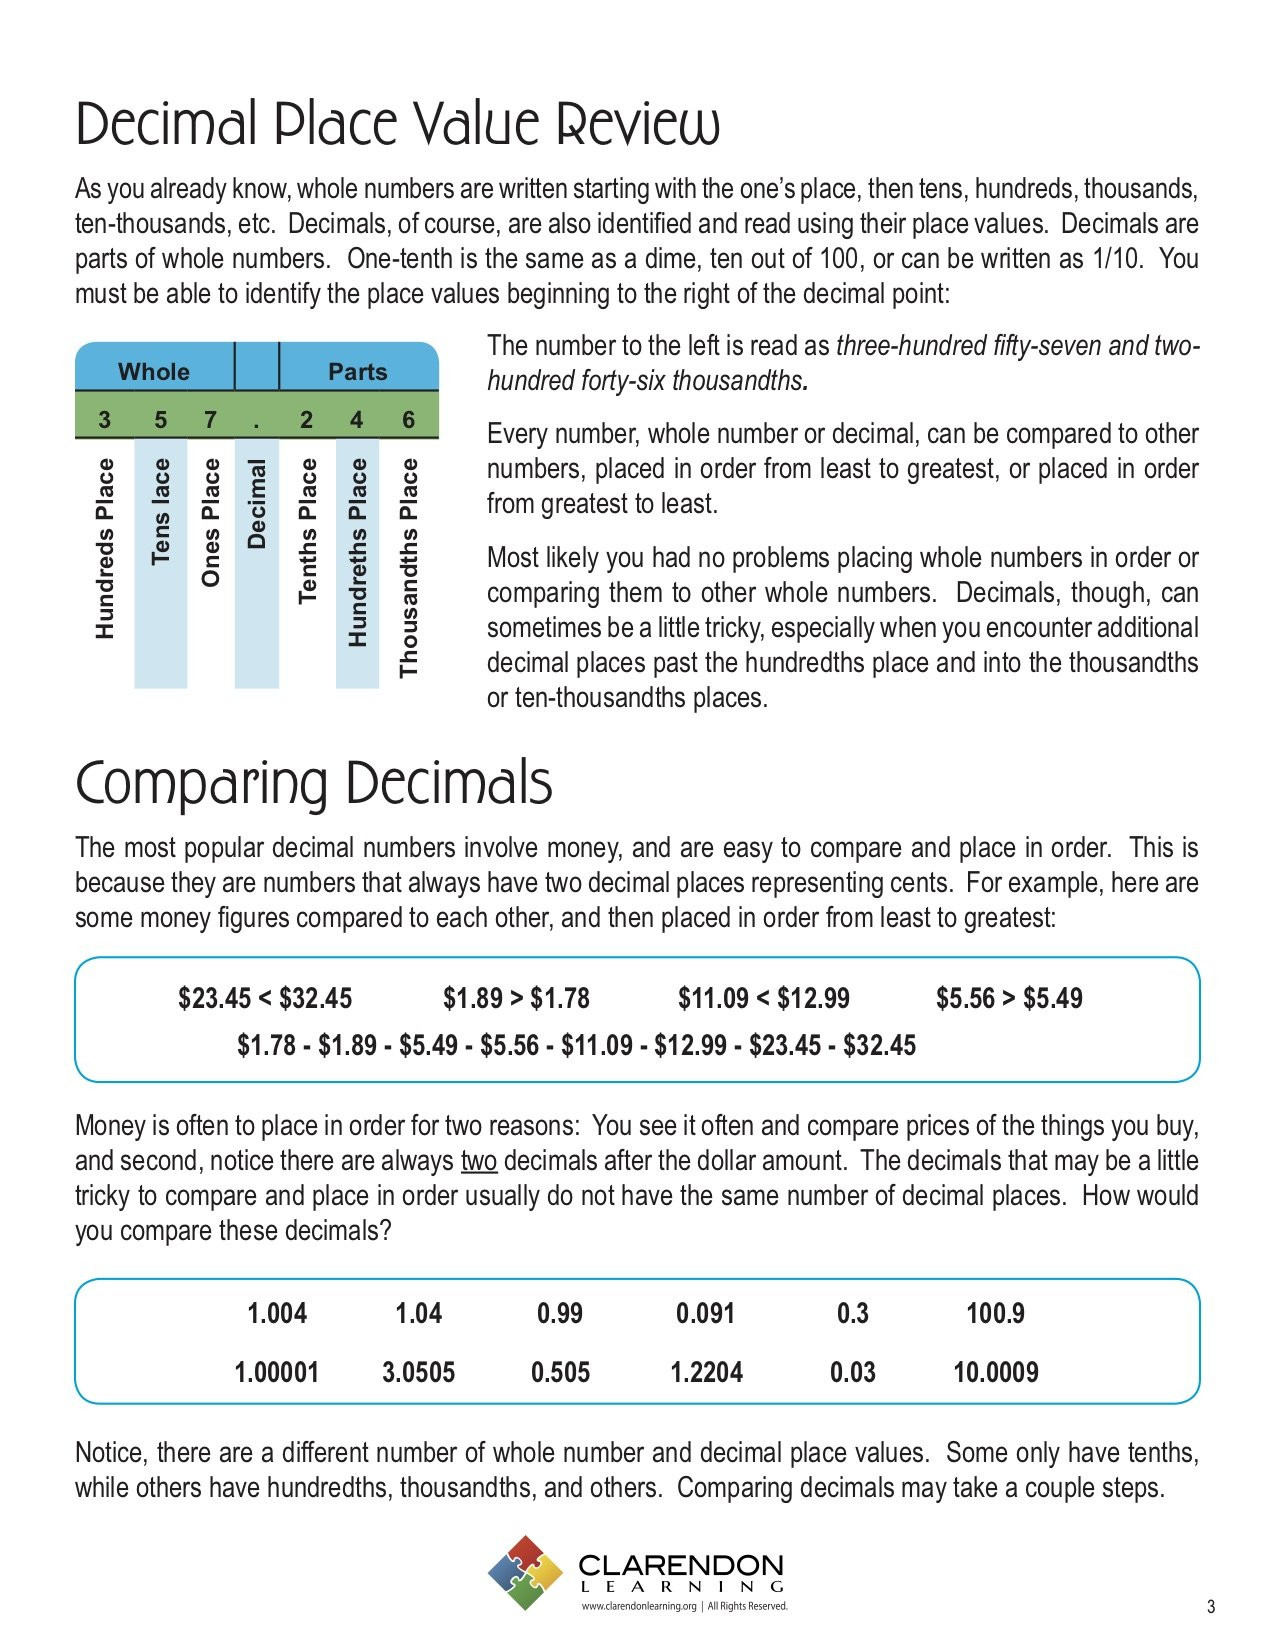 Comparing Decimals Worksheet 5th Grade Paring Decimals